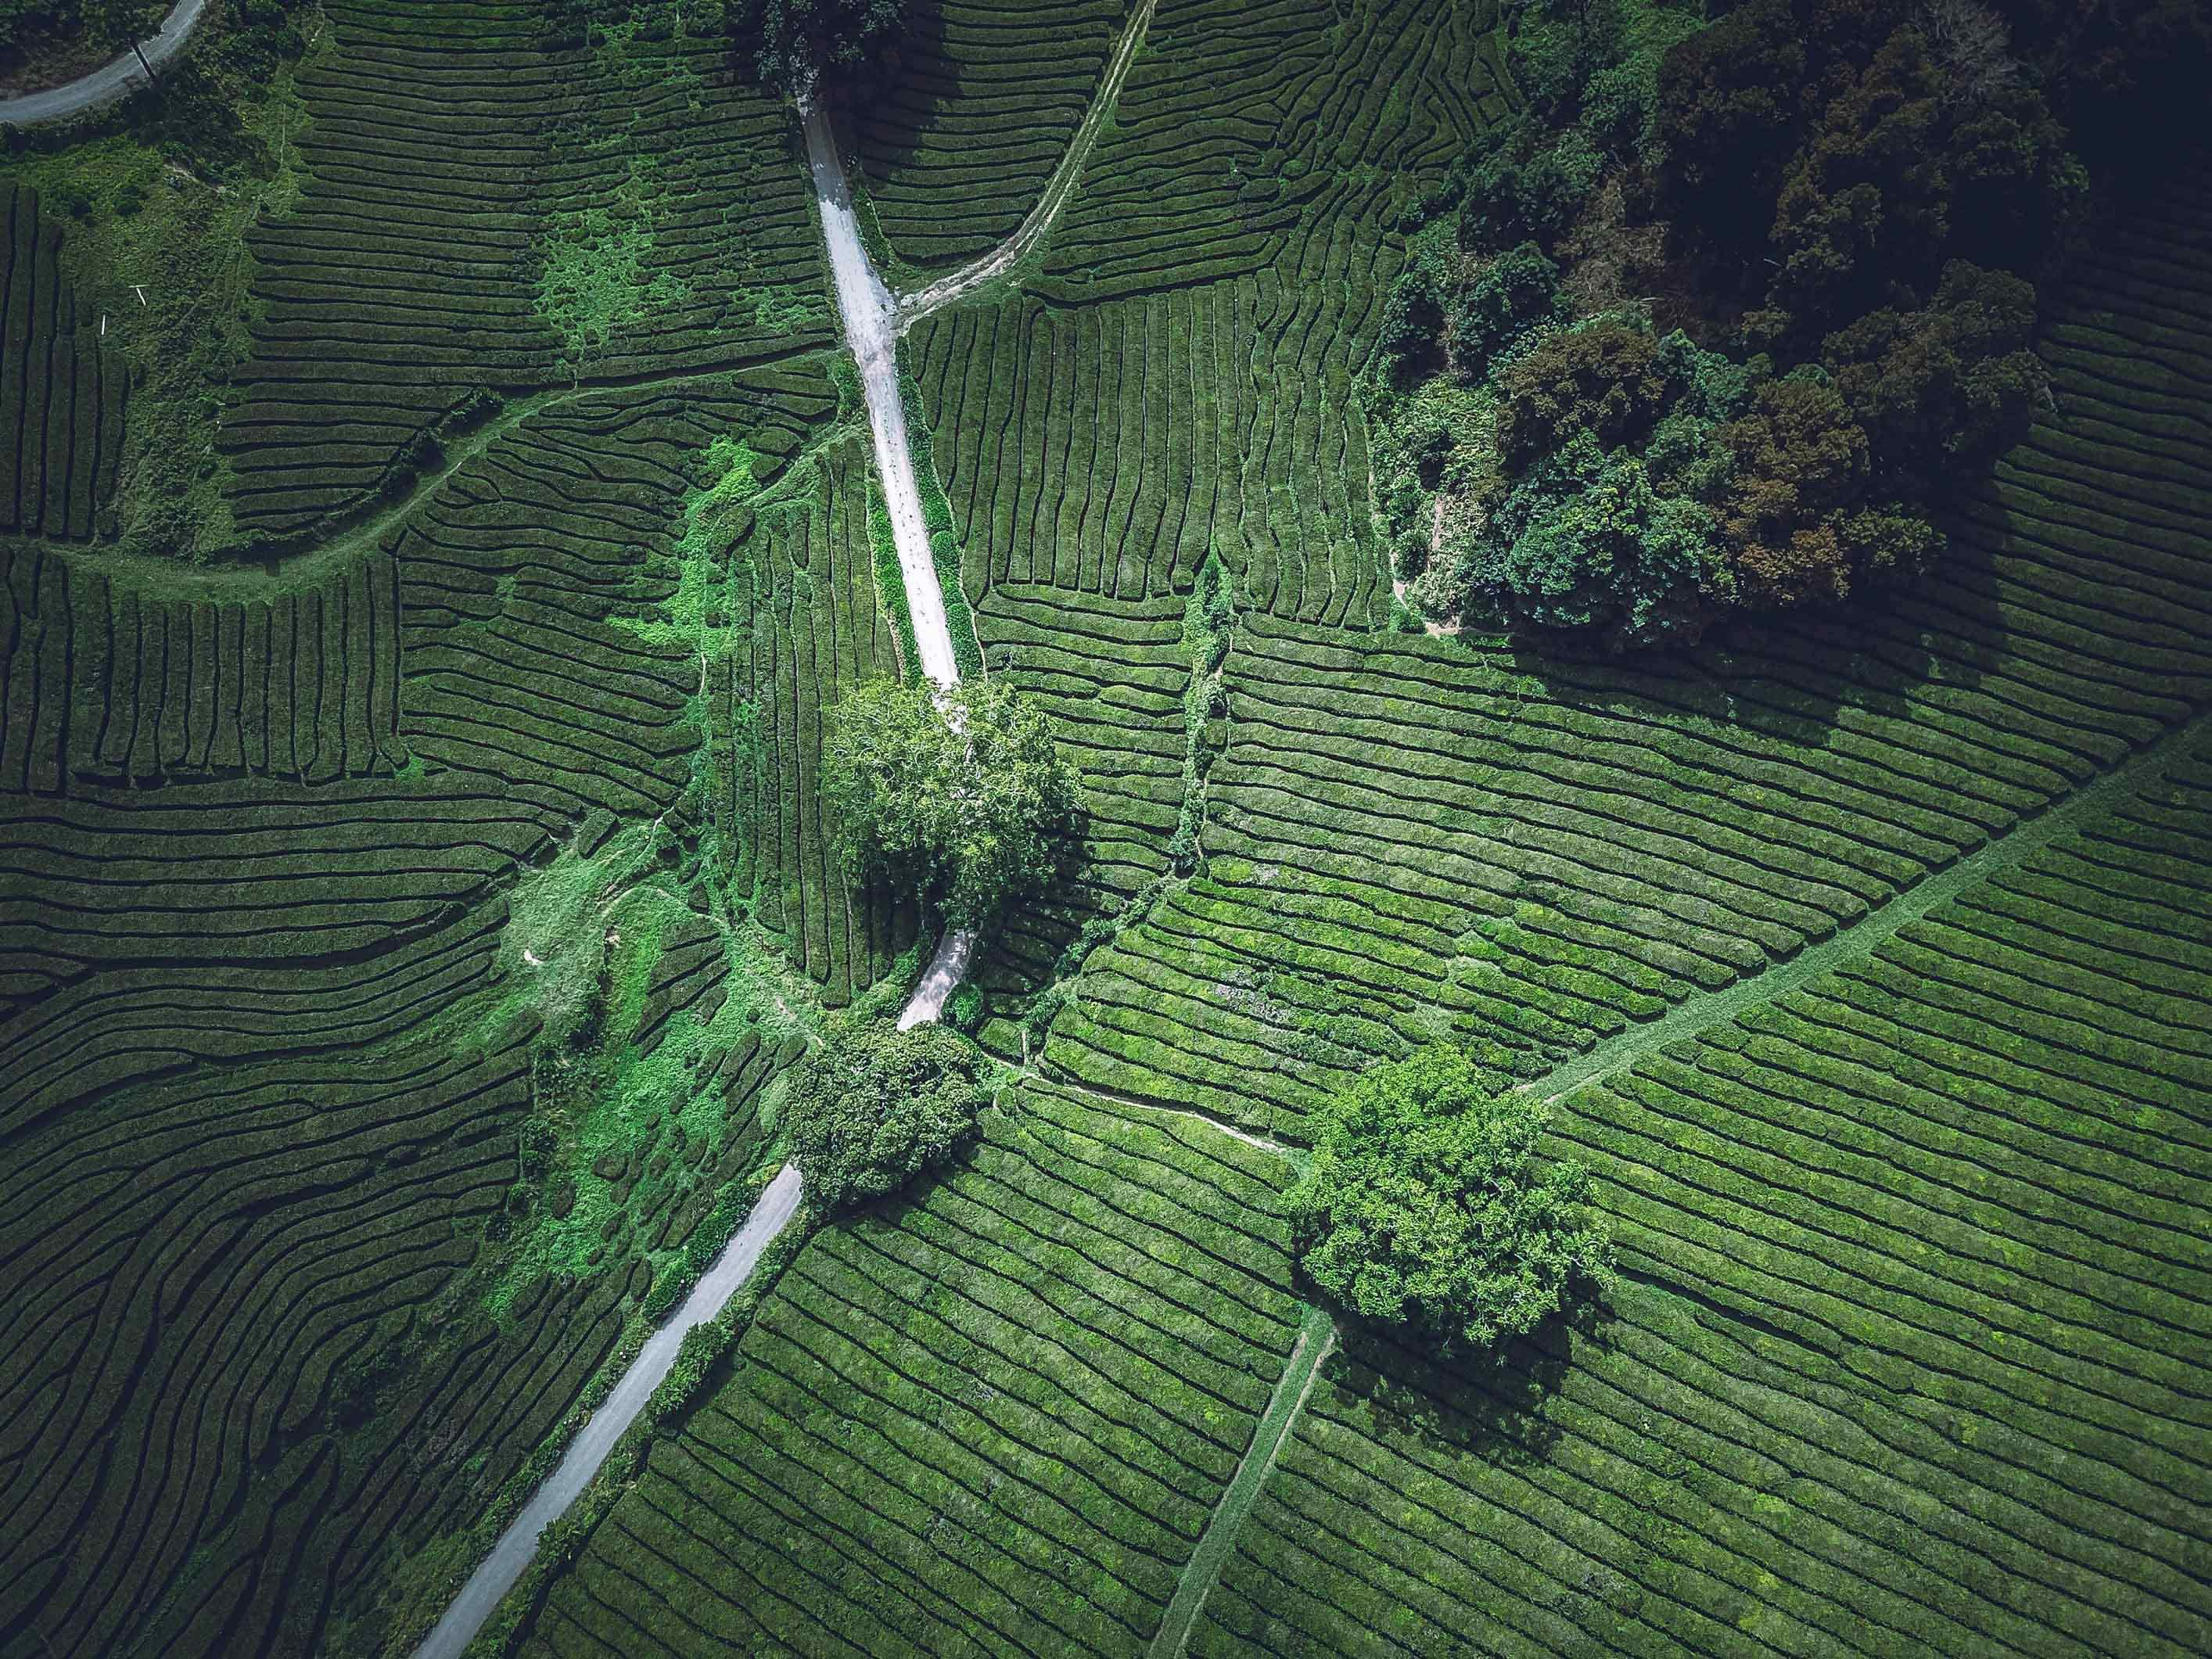 European Tea Plantation photo by Ferdinand Sthr